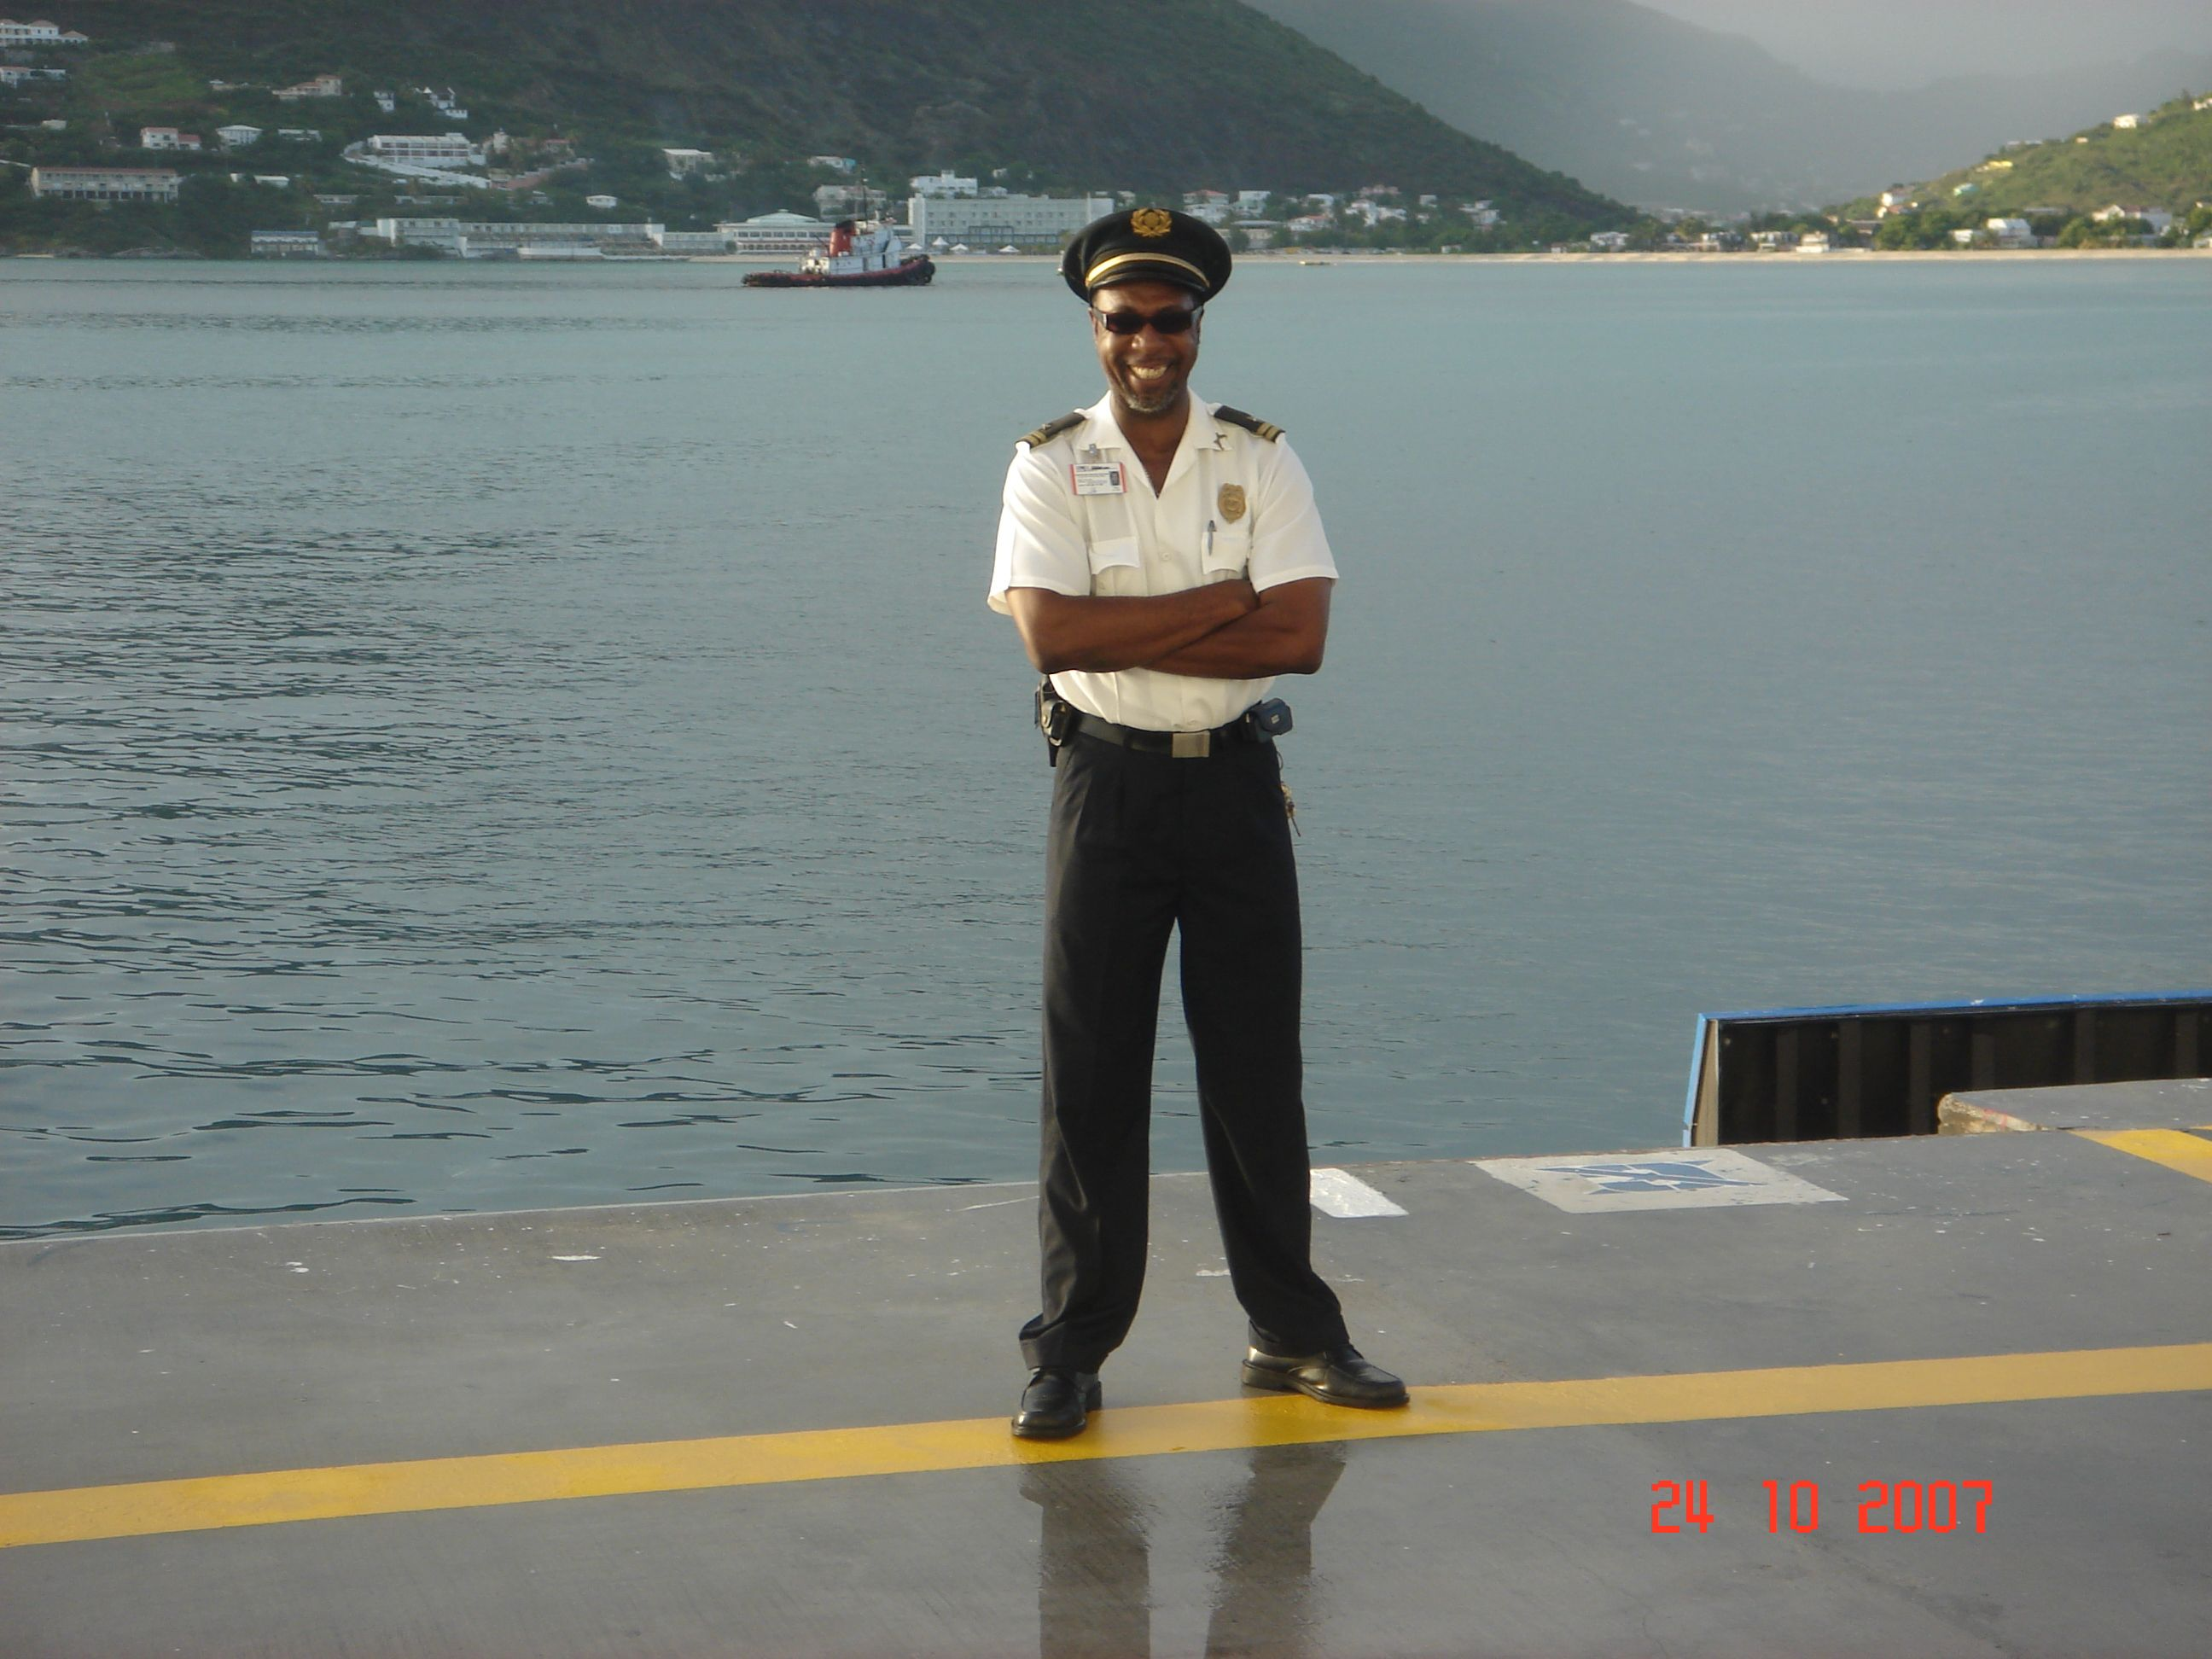 Port Security Officer Cruise Ship Security Pinterest Cruise - Is there security on cruise ships